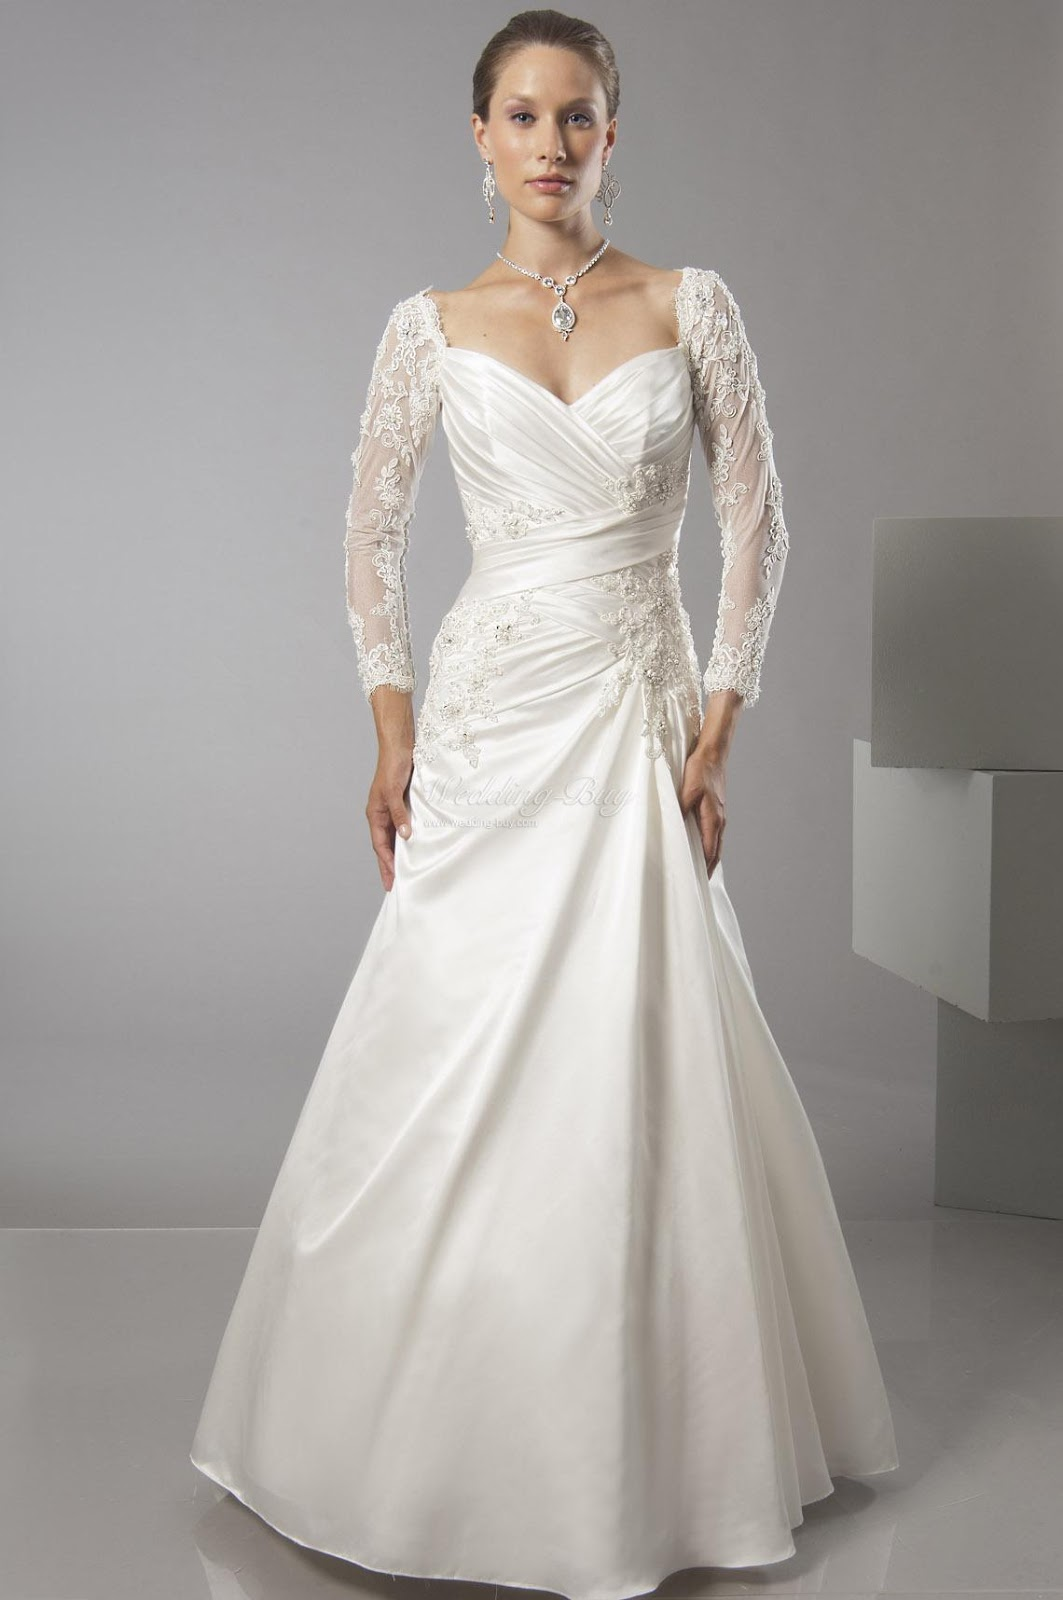 spaghetti strap wedding dress with pockets, wedding dresses with sleeves pinterest, winter wedding dresses with sleeves, lace wedding dresses with sleeves 2012, off the shoulder wedding dresses with sleeves, romantic wedding dresses with sleeves, short wedding dresses with sleeves, modest wedding dresses with sleeves